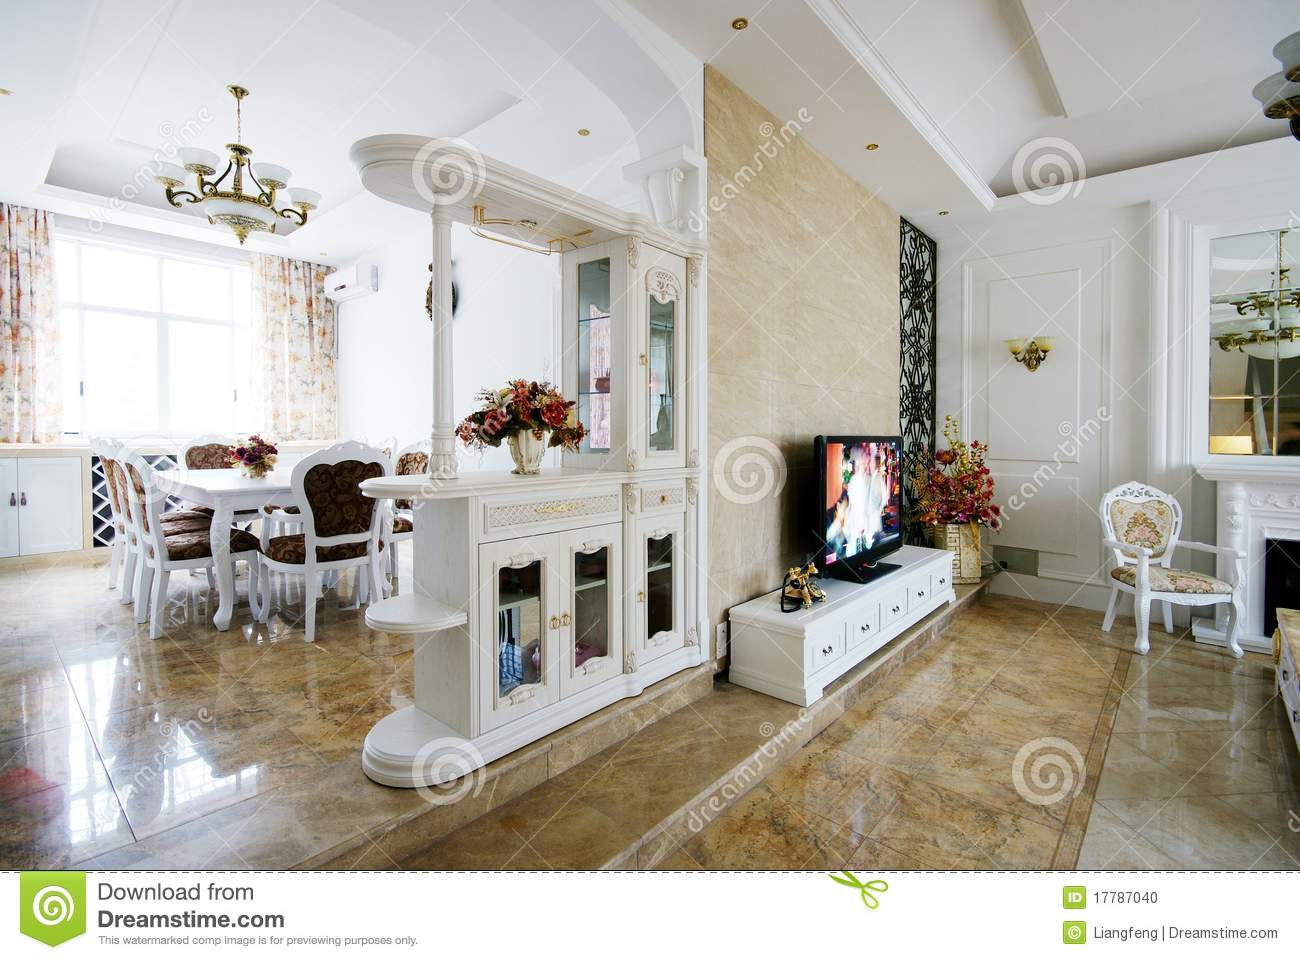 new room decoration stock photo image 17787040